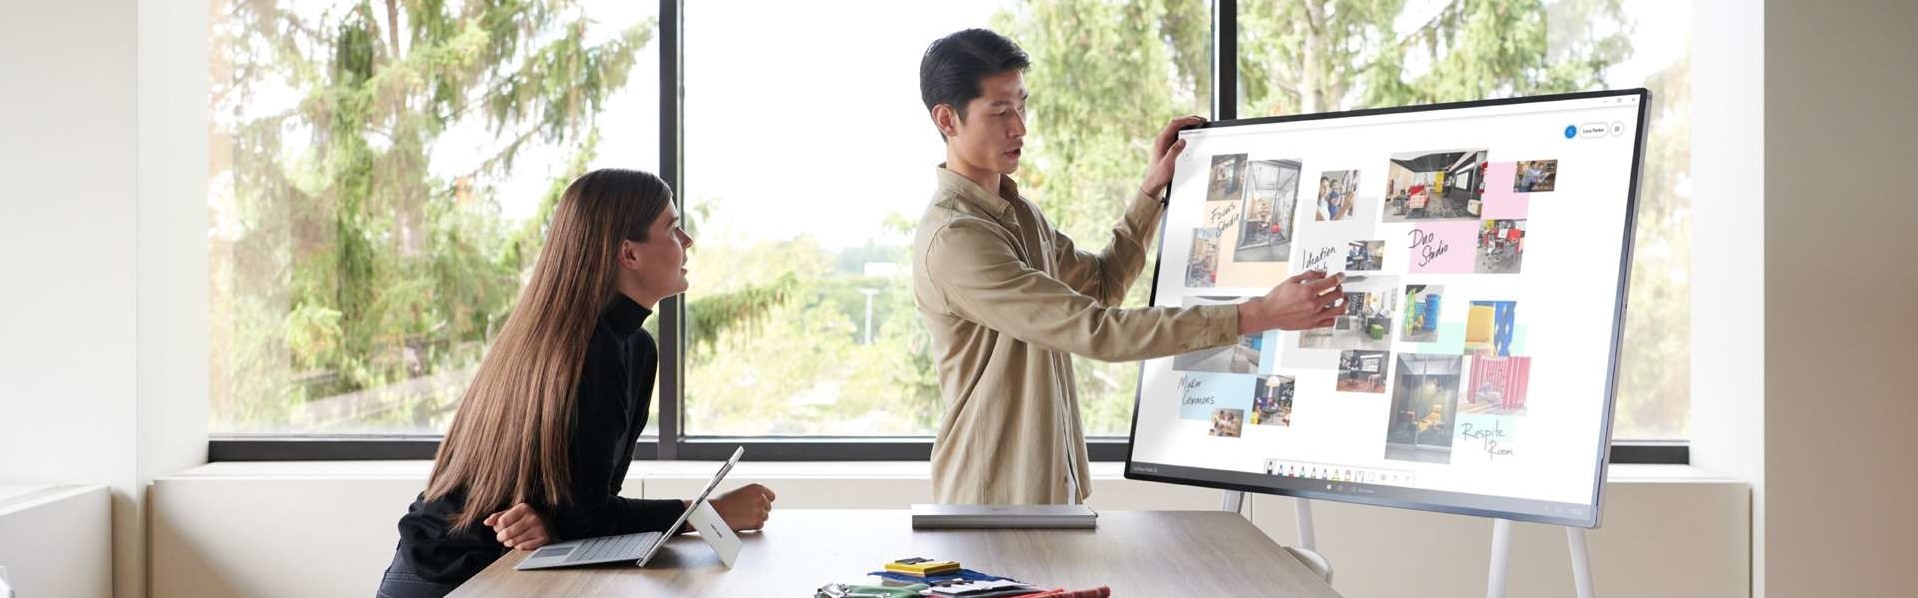 Two team members whiteboard ideas with Surface Hub 2S in an open office setting